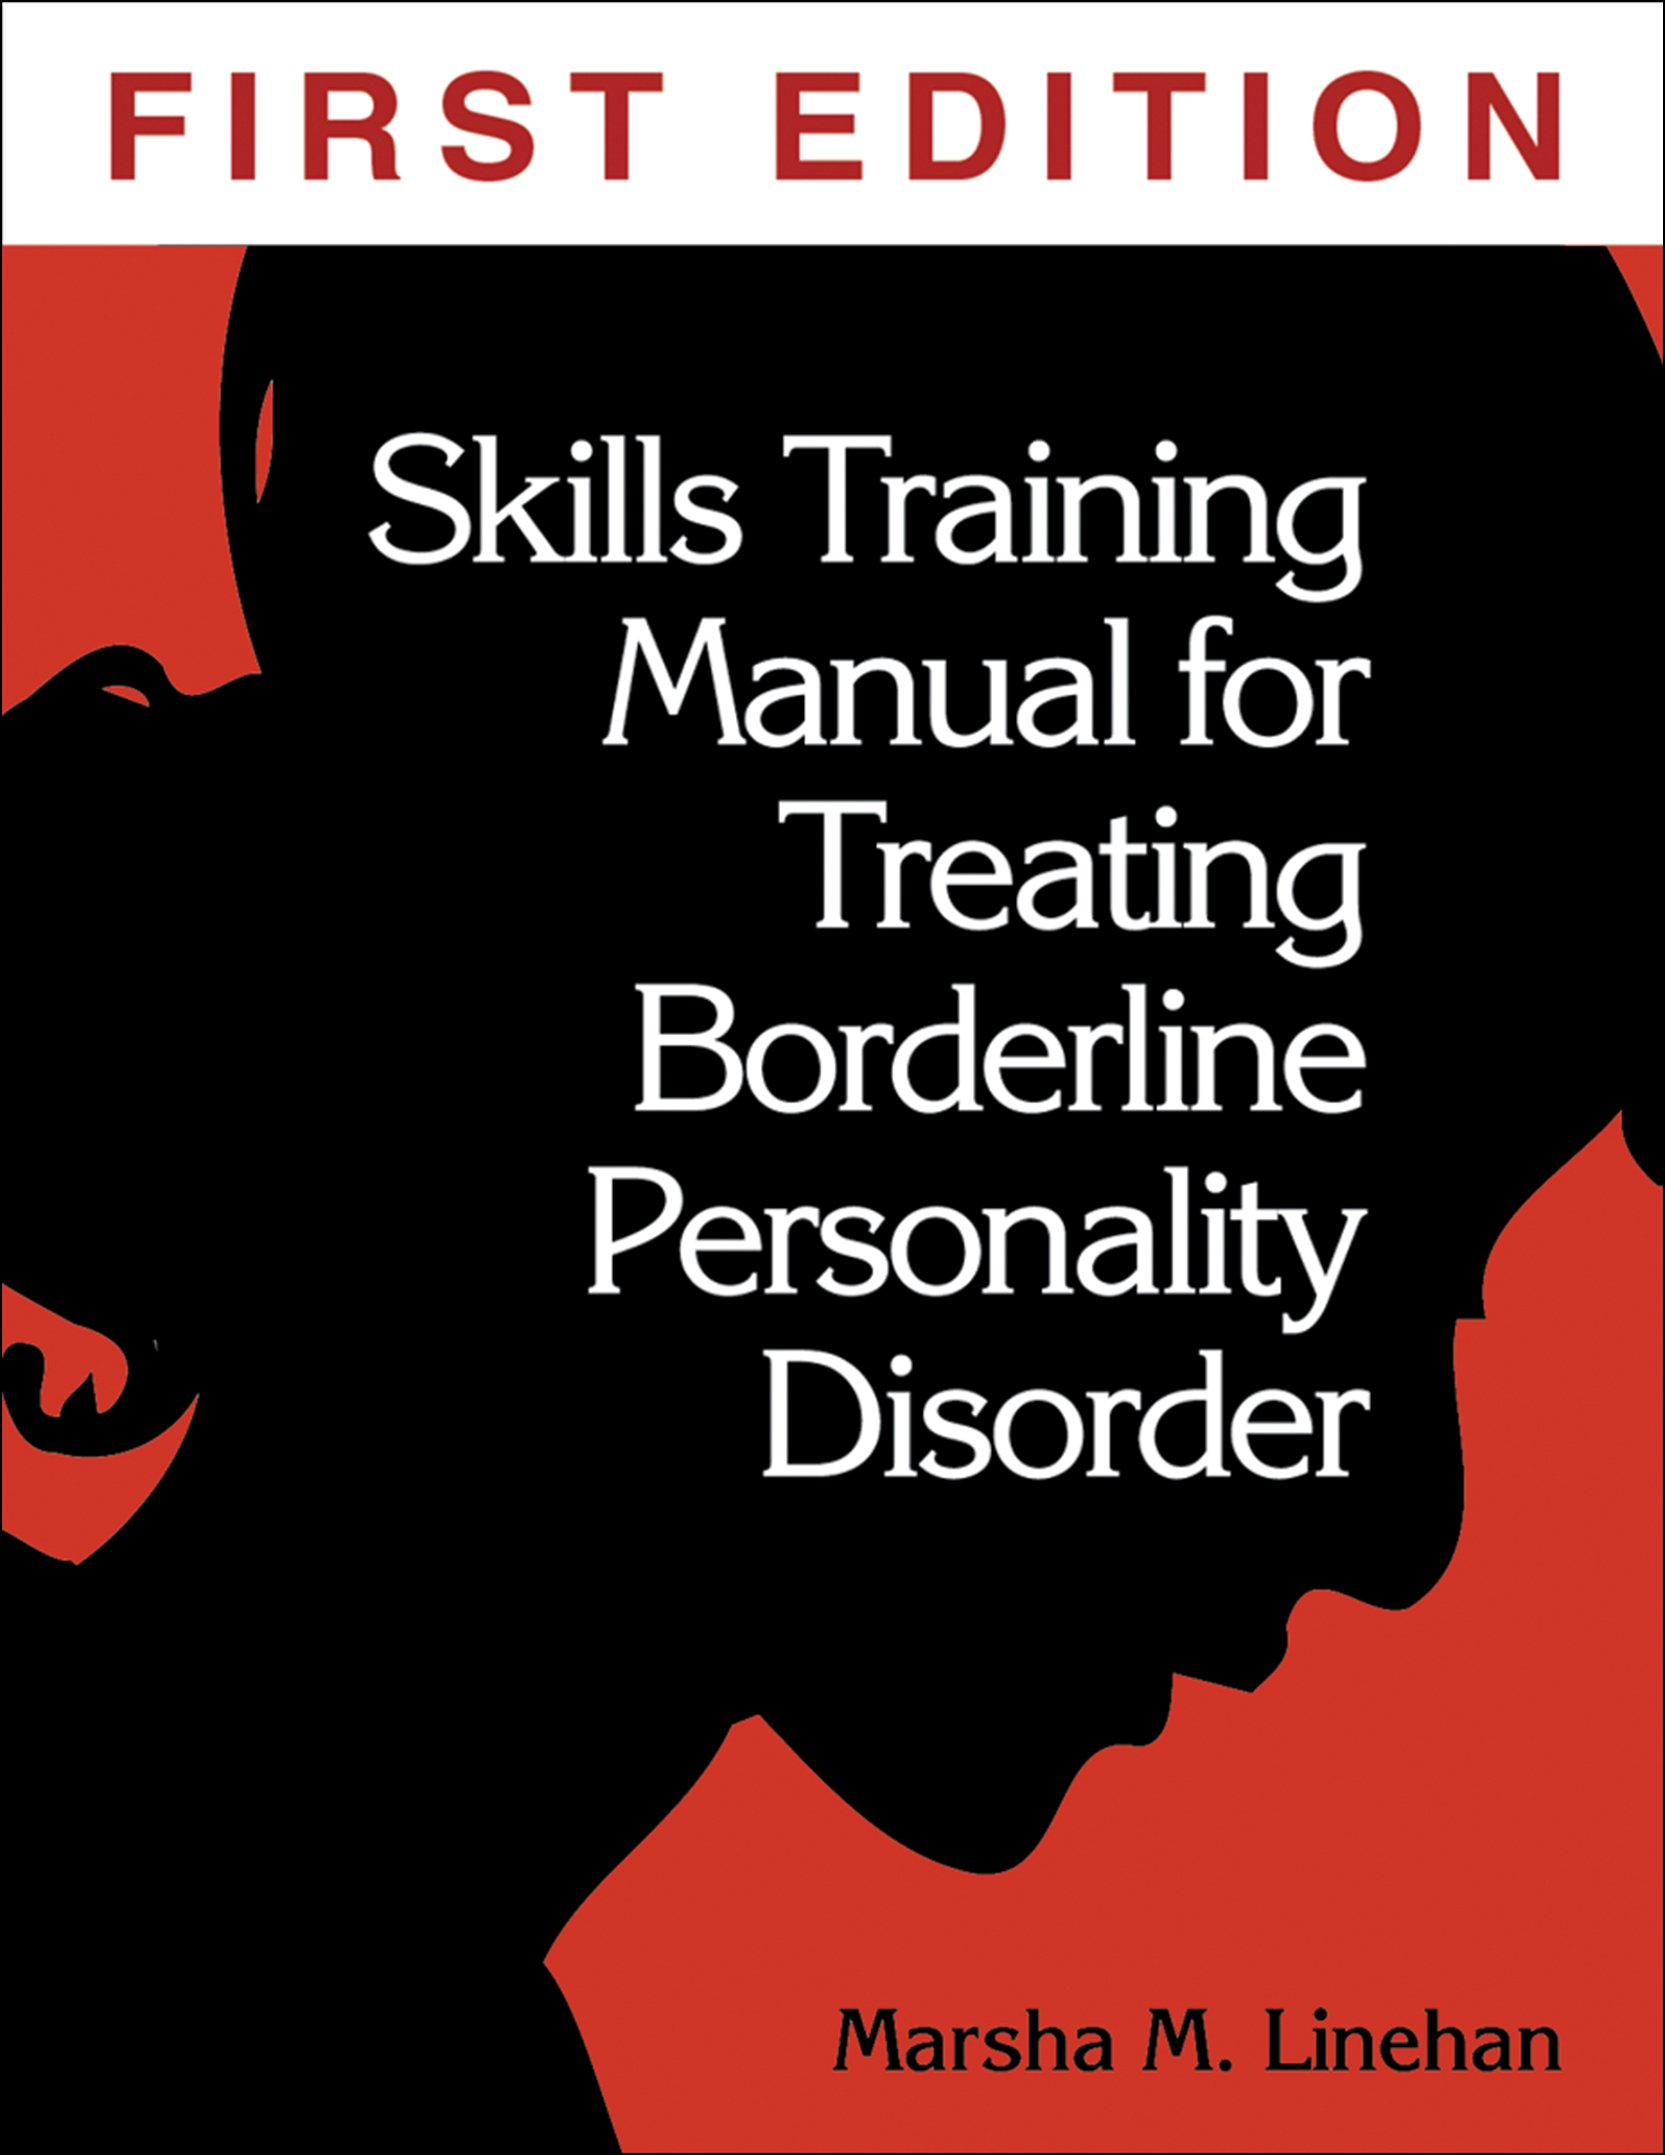 Skills Training Manual for Treating Borderline Personality Disorder ...